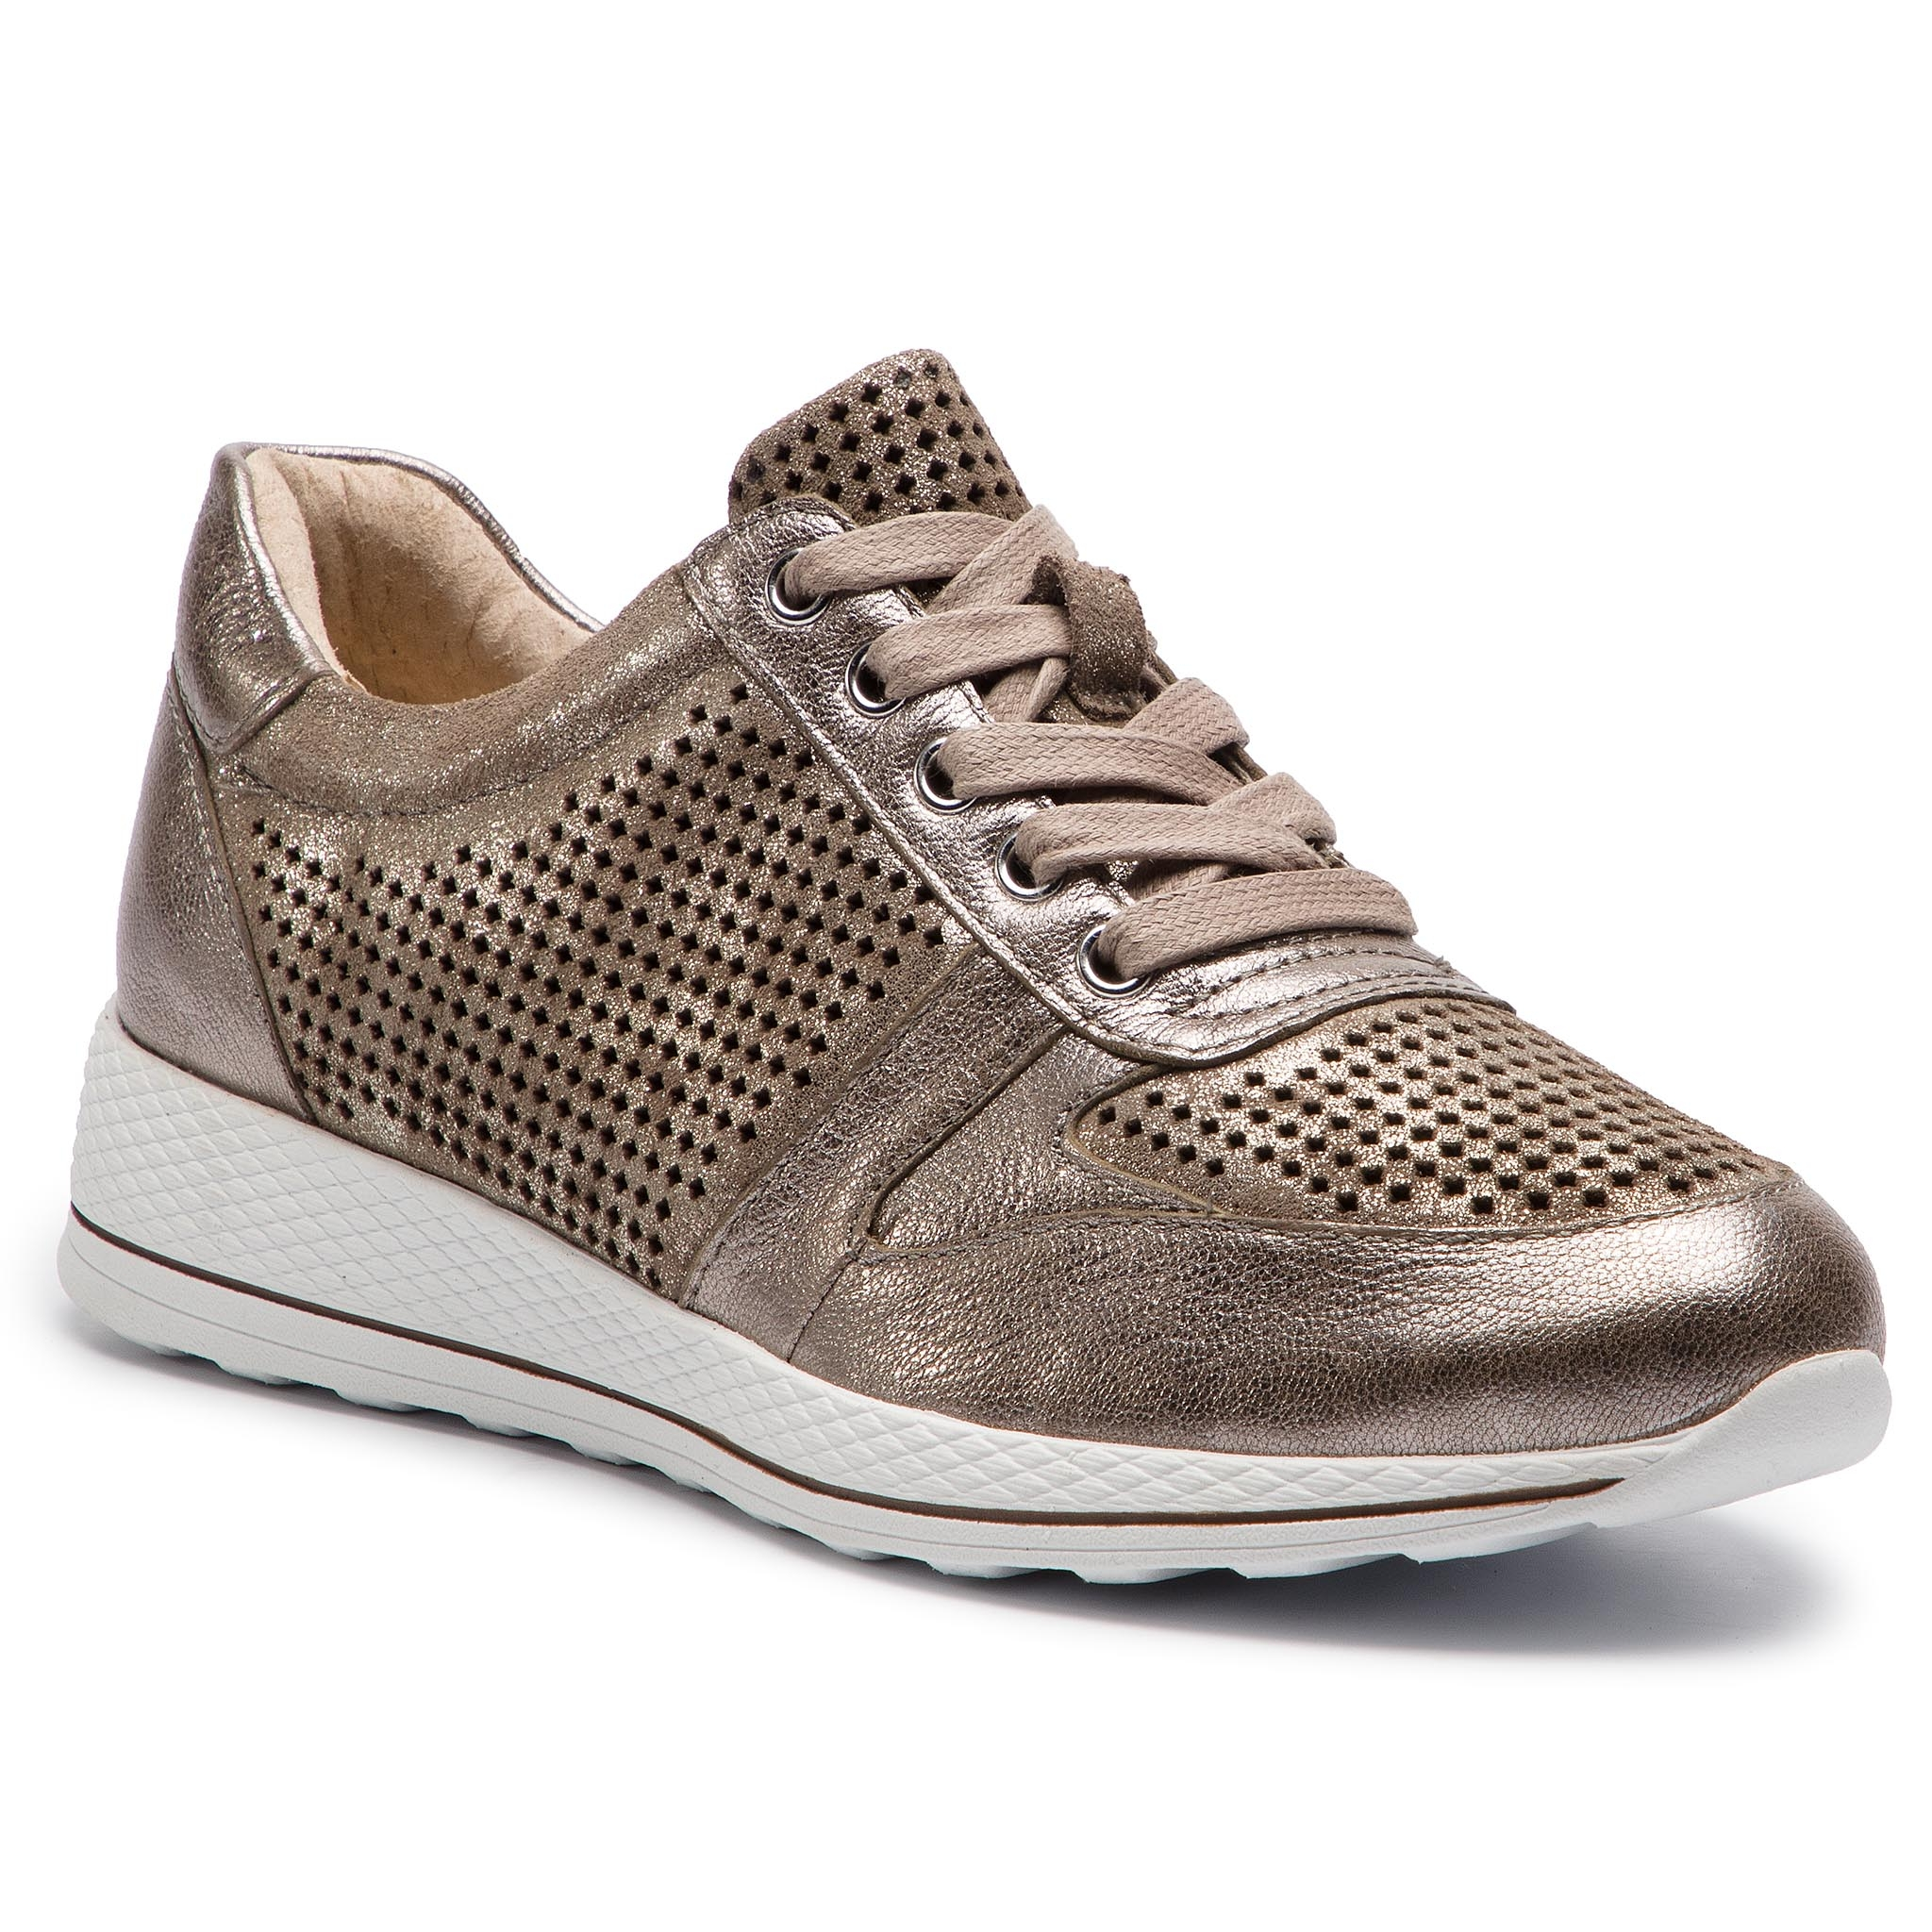 Sneakers CAPRICE - 9-23704-22 Taupe Comb 345